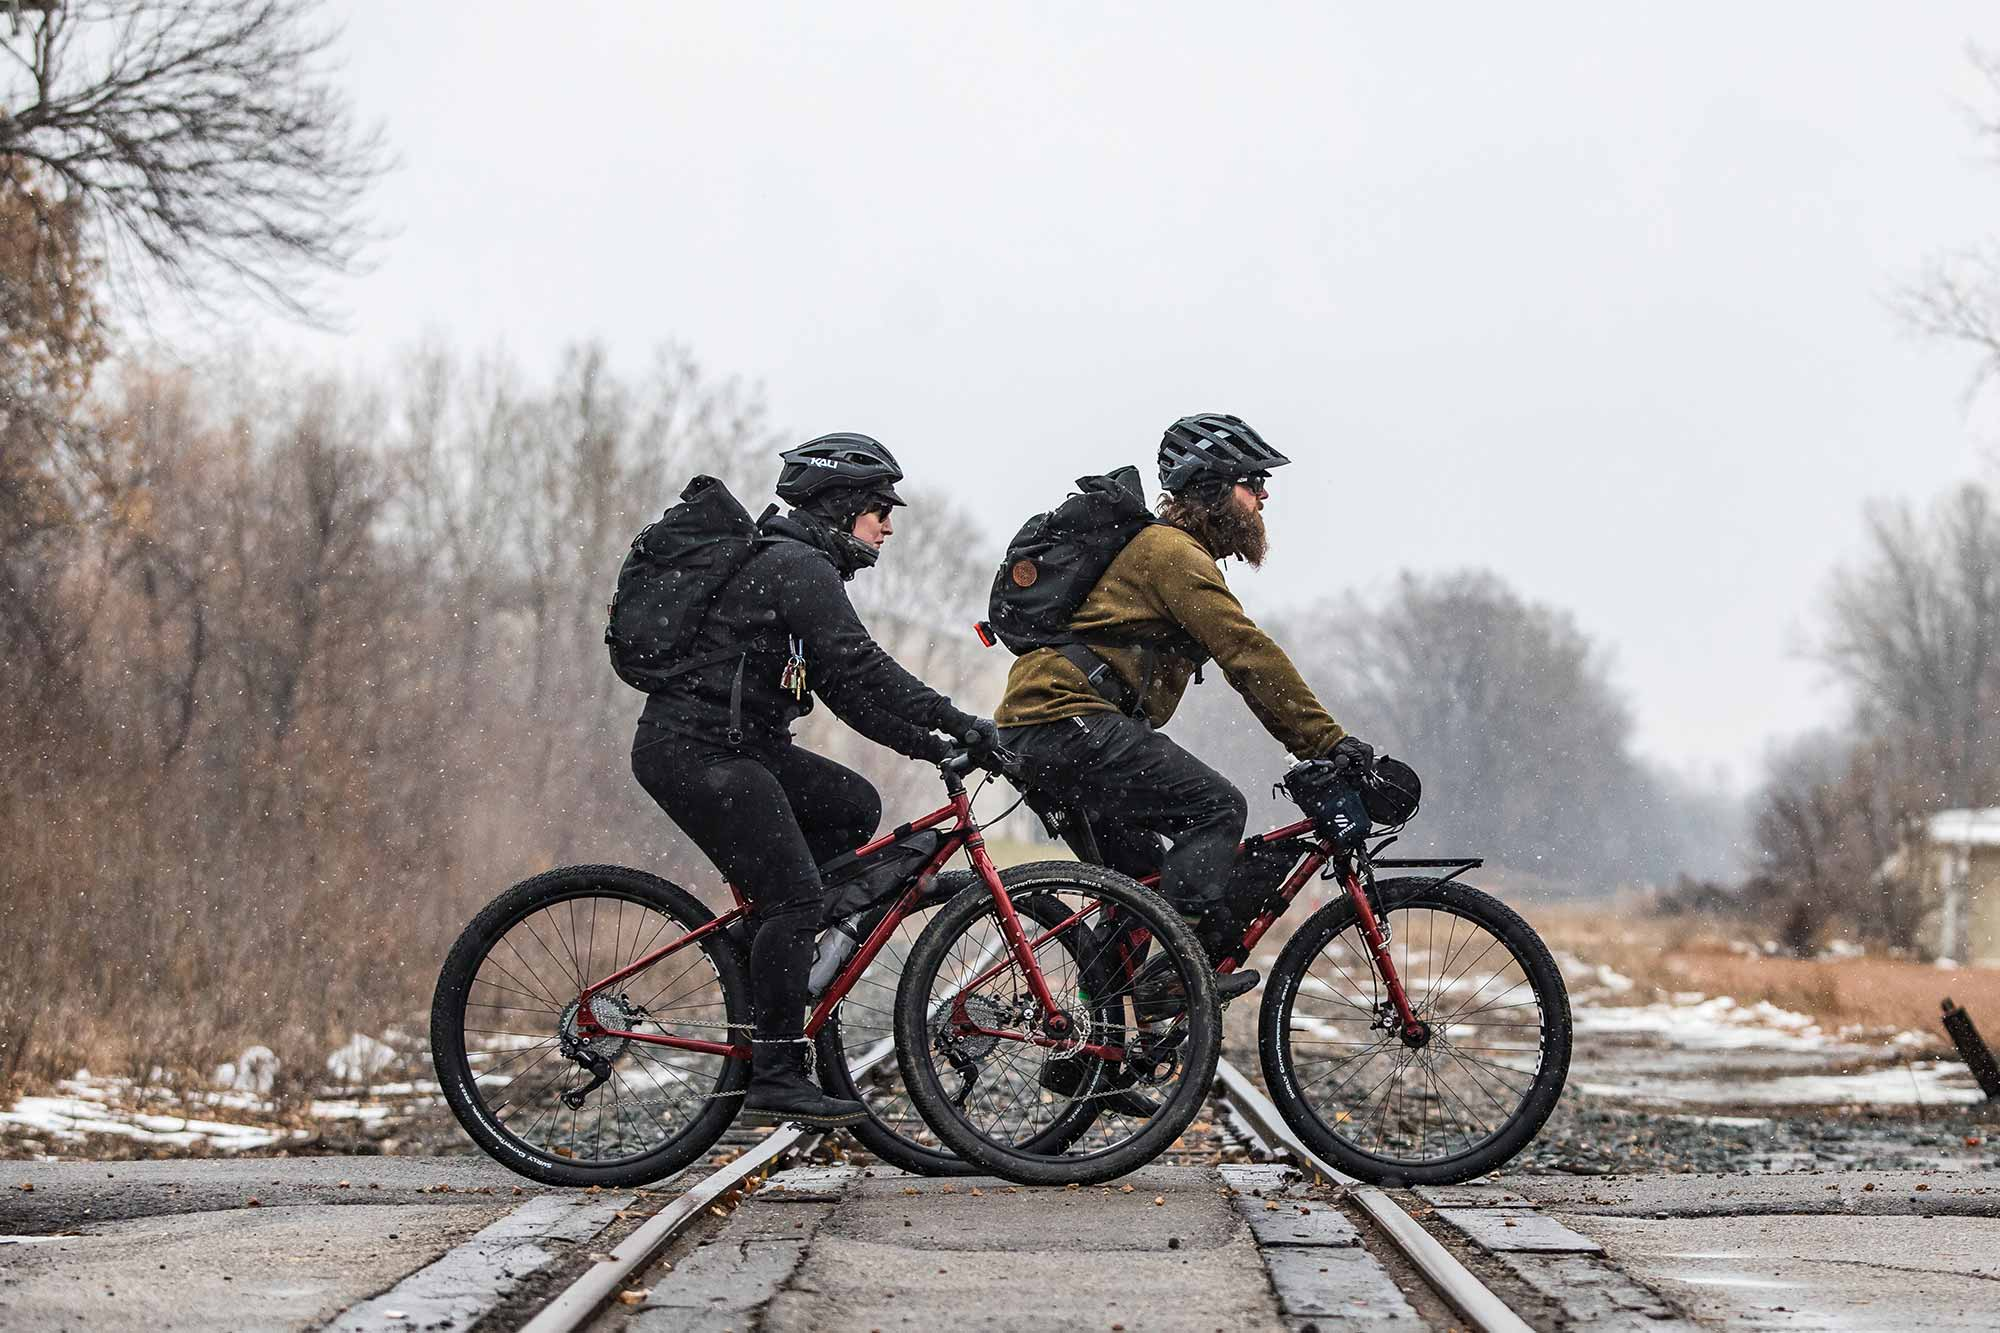 Two bike commuters riding on road in warm clothing, helmets and backpacks in light snow